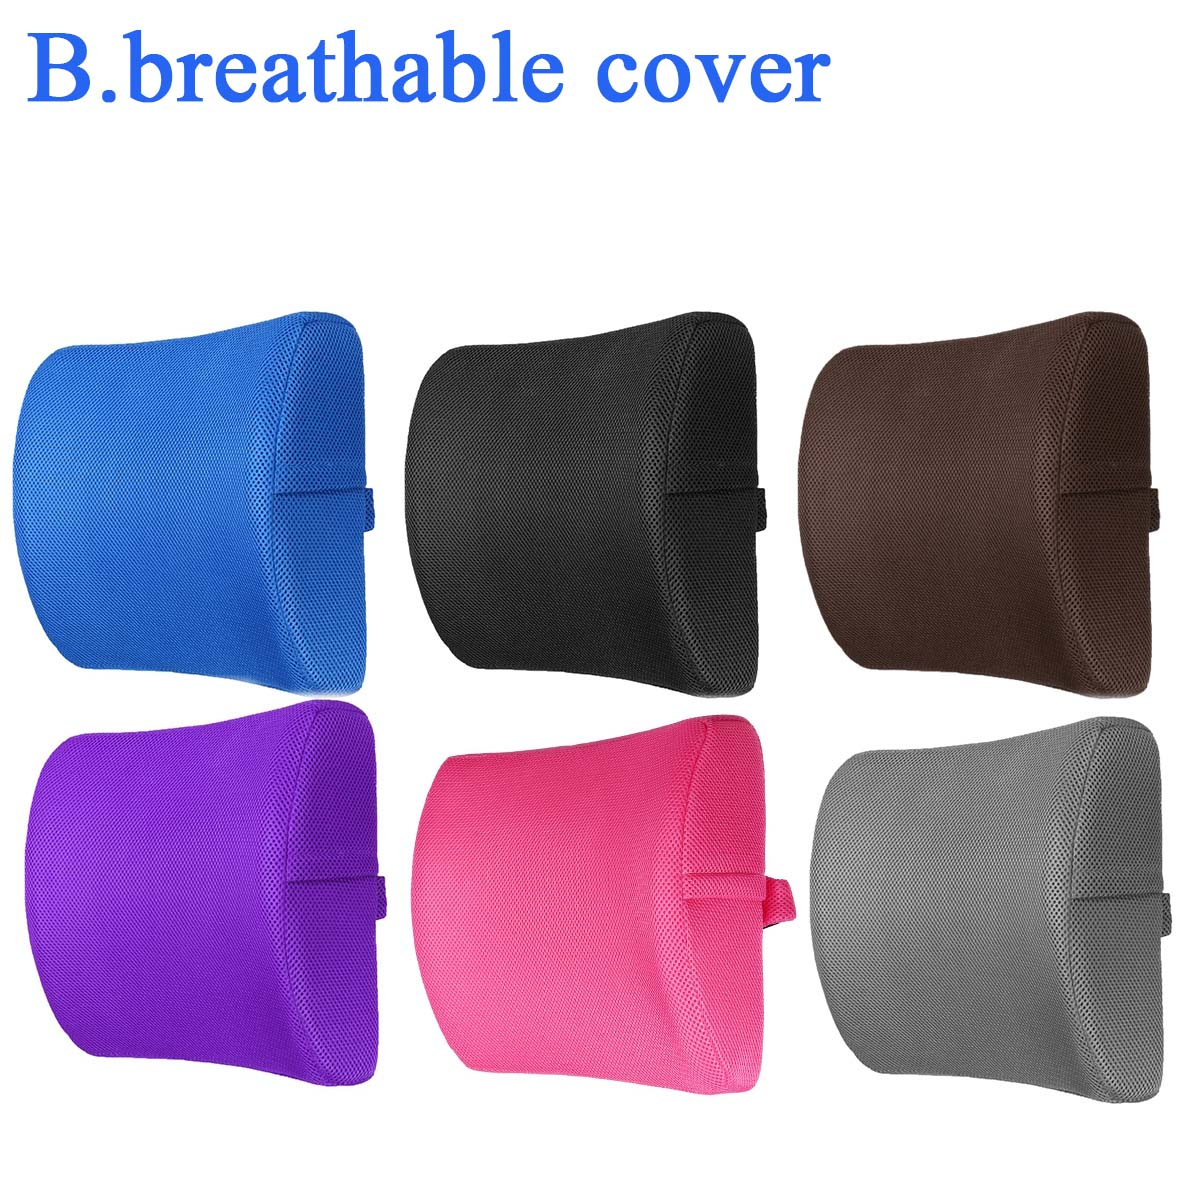 6 Color Lumbar Pillows Made Of Soft Foam For Car Seat To Support And Relieve Back Pain 12